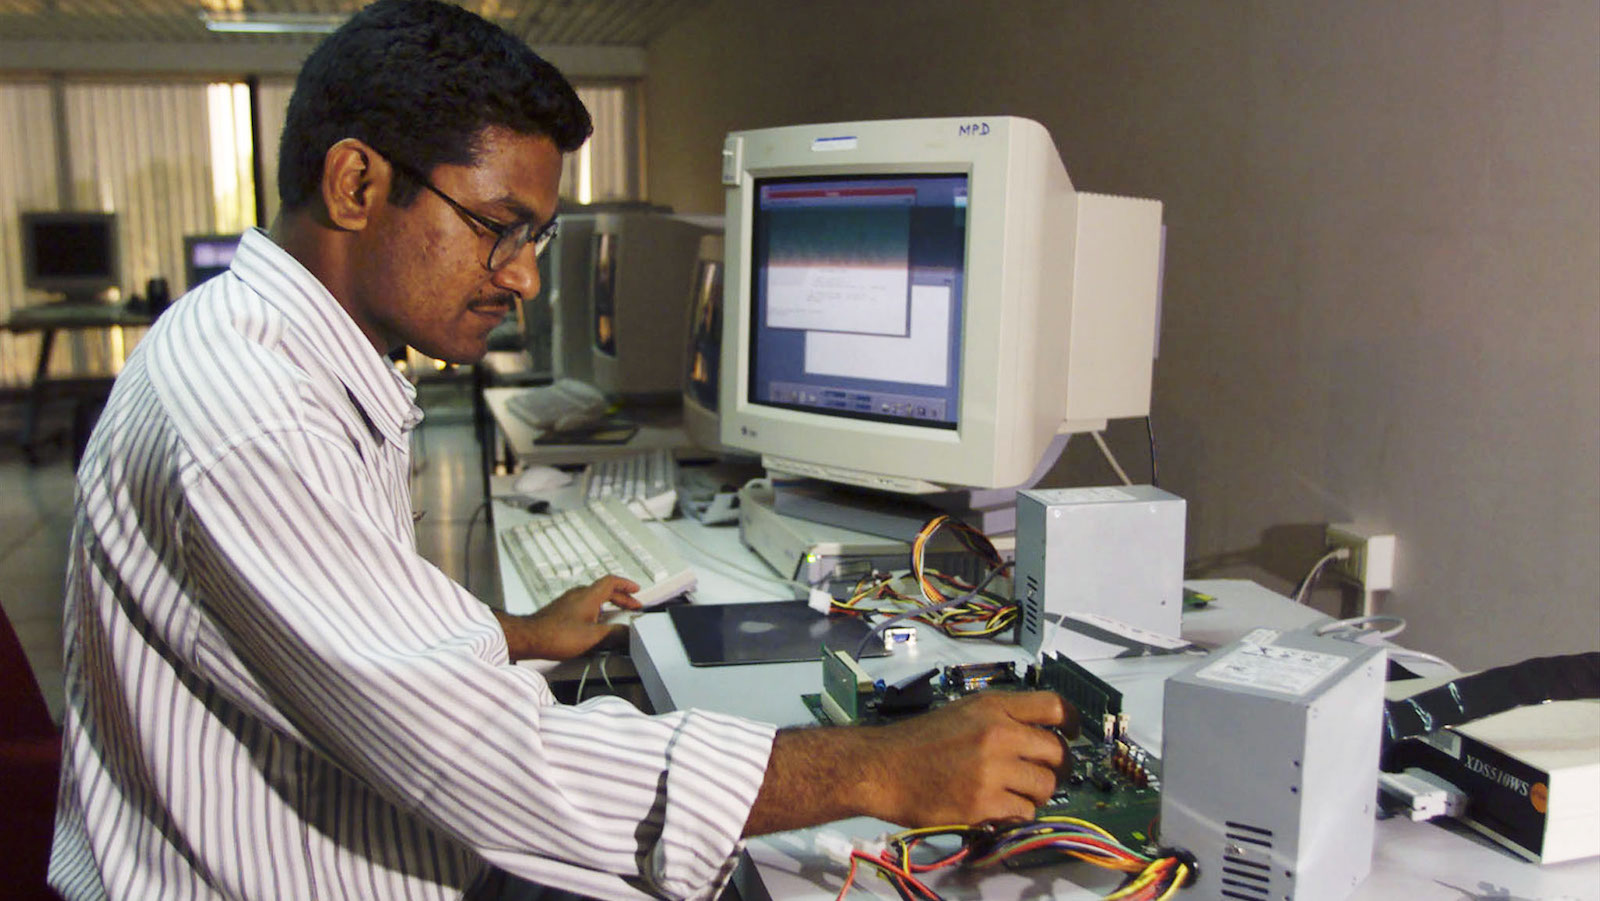 A semi conductor chip designer works on a computer component at the Indian unit of Texas Instruments Inc in Bangalore. Texas Instruments was the first computer software company to set up its operations in the city in 1985. Bangalore today, is home to dozens of global and domestic technology companies employing an estimated 75,000 software professionals and is popularly referred to as Asia's 'Silicon Valley'. Picture taken April 4.